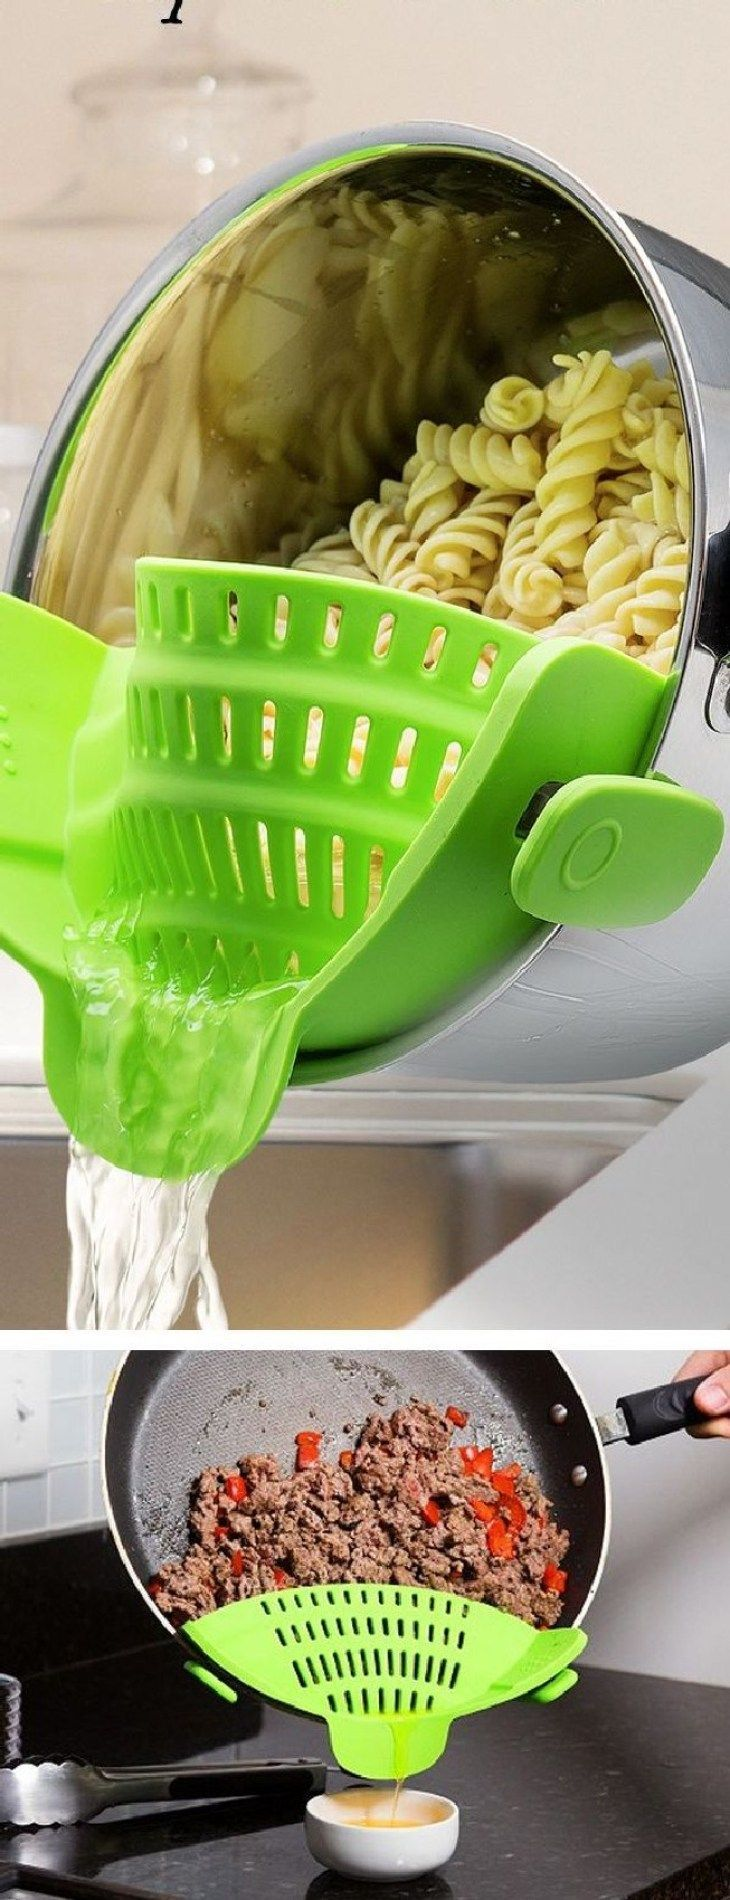 Best 12 Awesome Crazy Kitchen Gadgets for Food Lovers   Kitchen ...